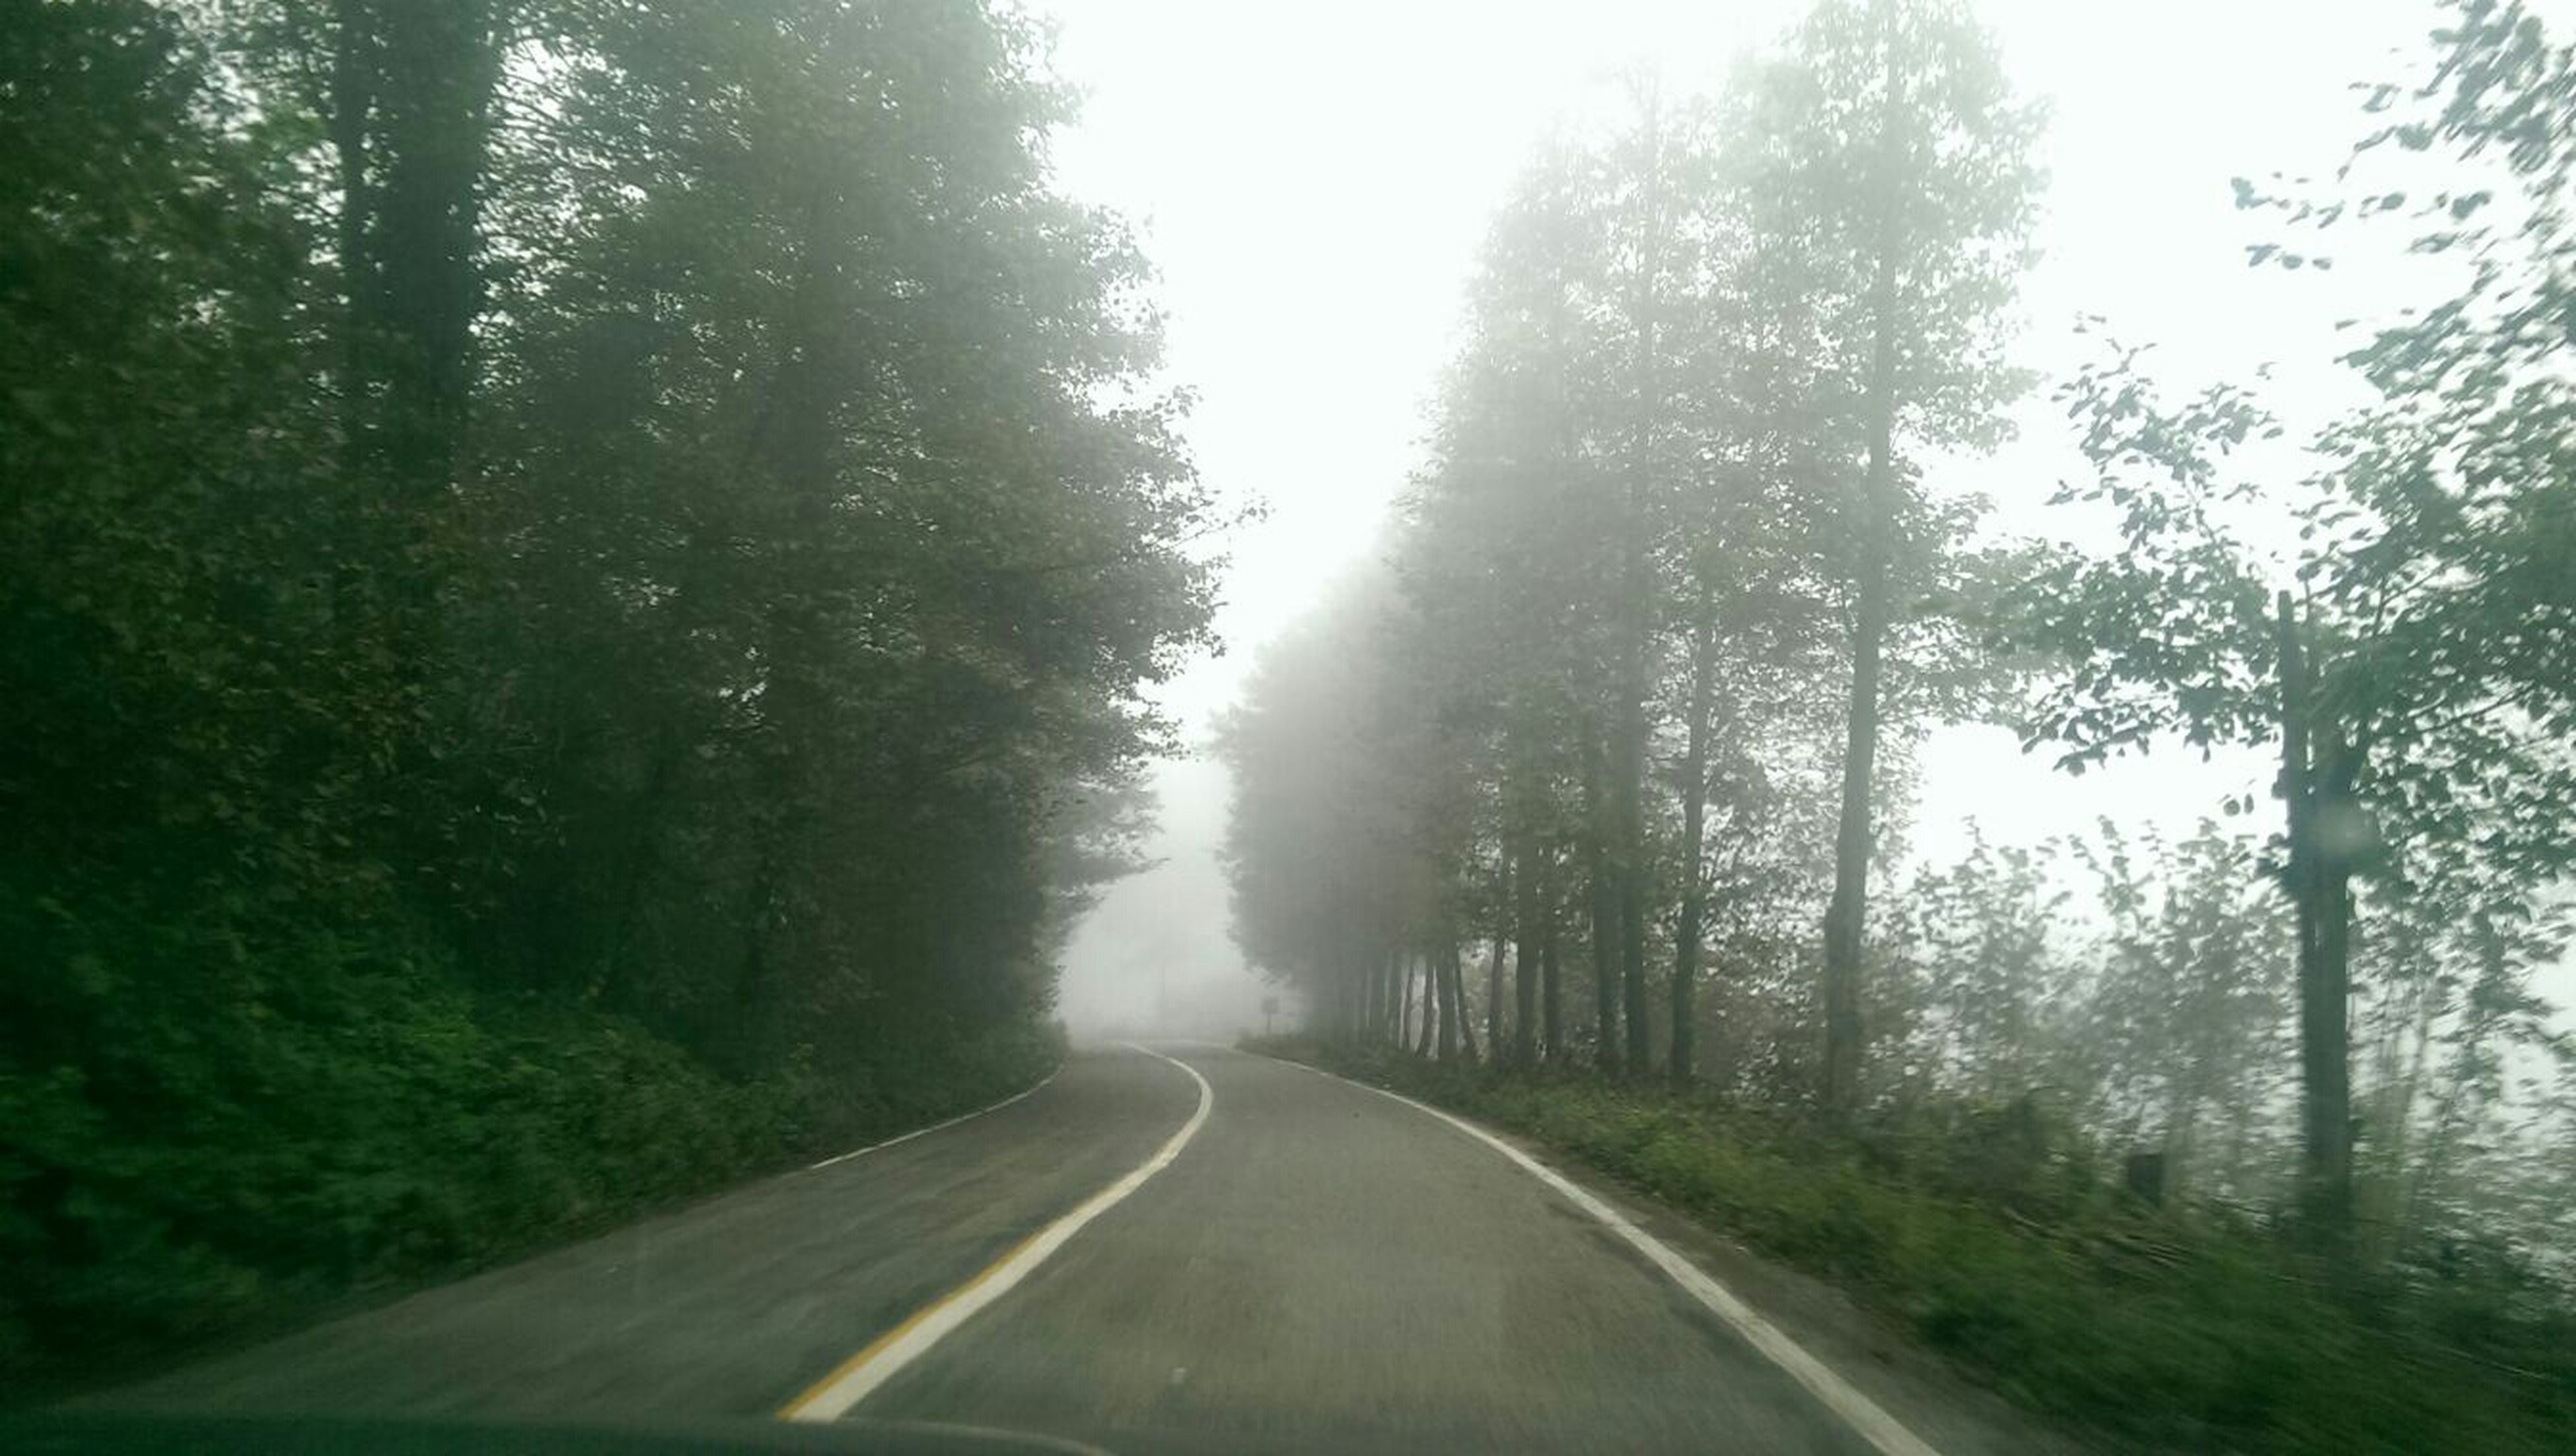 the way forward, transportation, tree, road, diminishing perspective, vanishing point, country road, road marking, empty road, fog, tranquility, nature, sky, forest, tranquil scene, growth, day, no people, non-urban scene